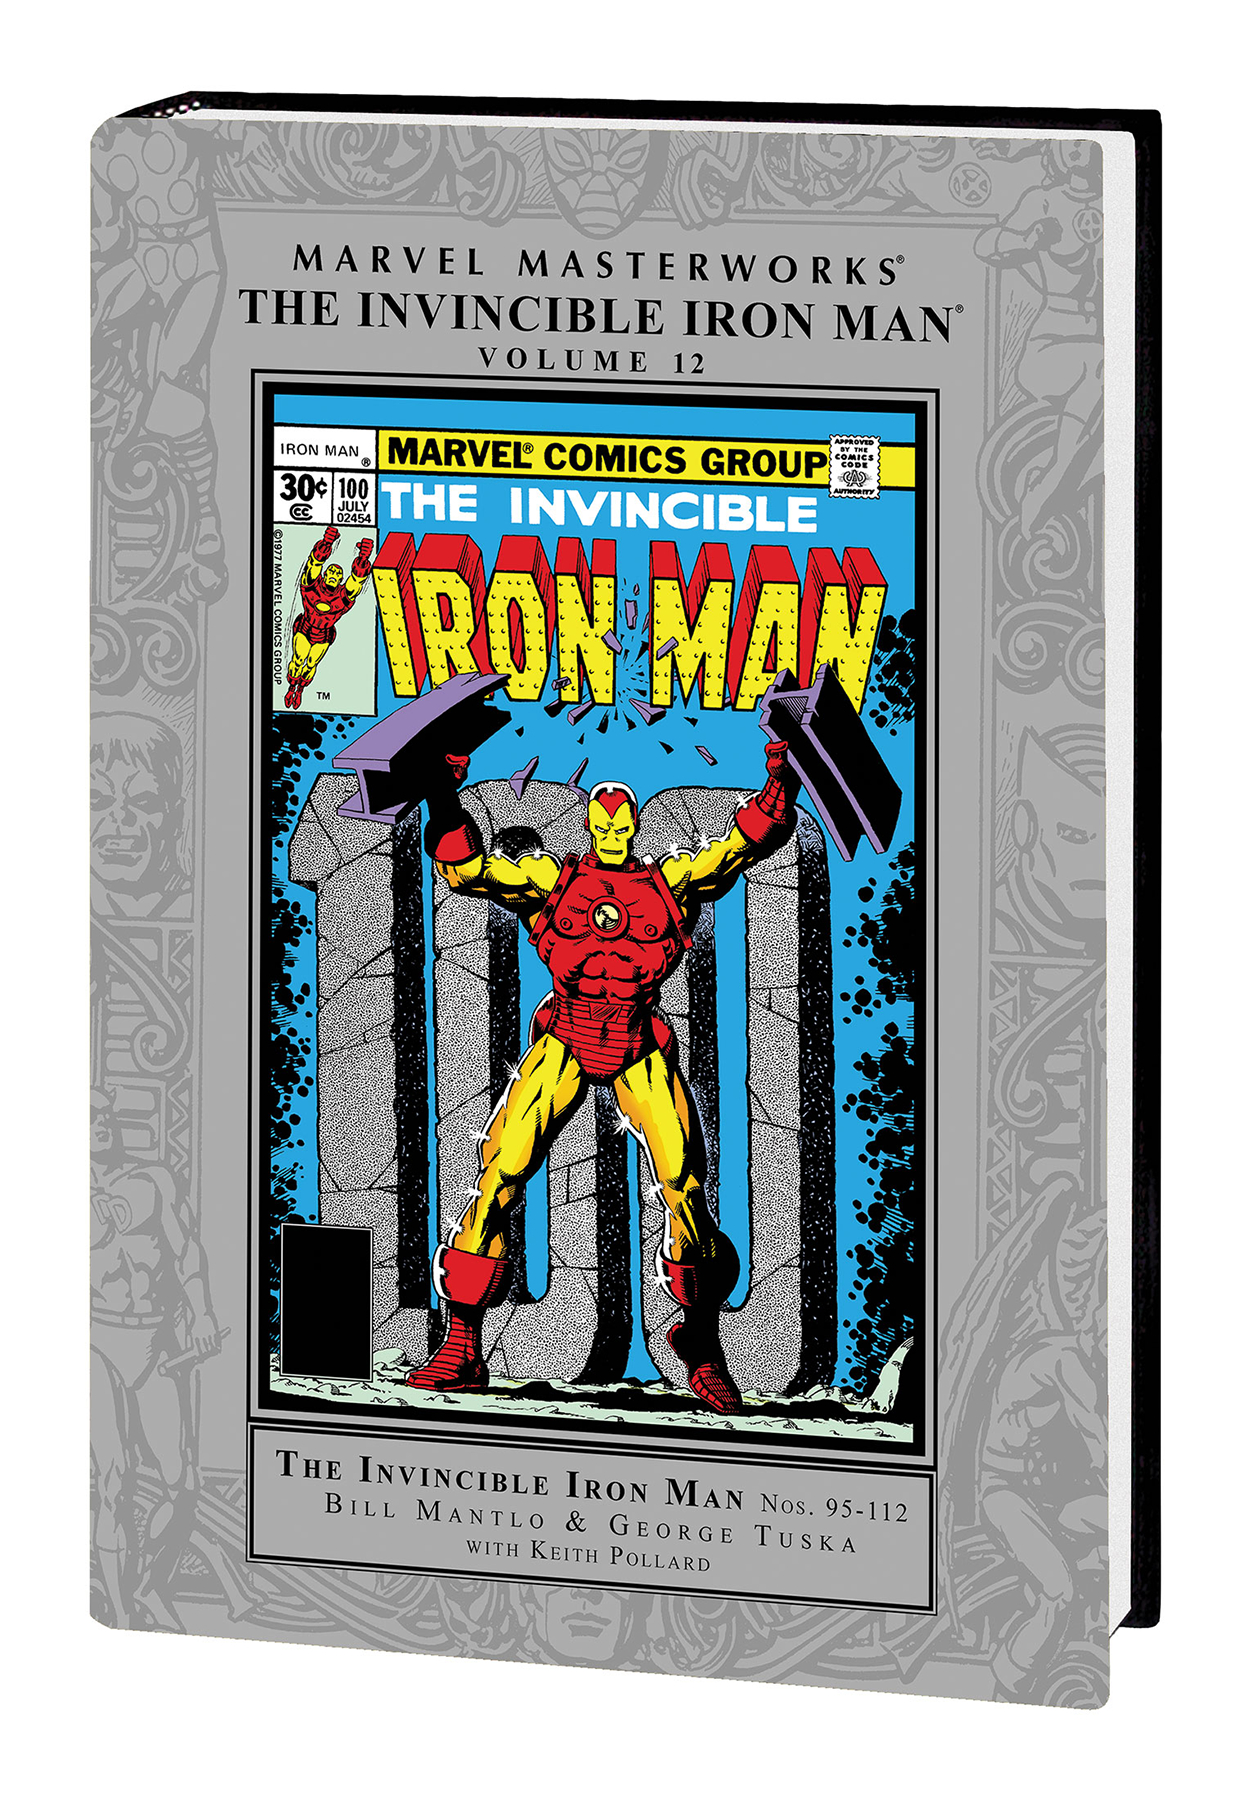 MMW INVINCIBLE IRON MAN HC VOL 12